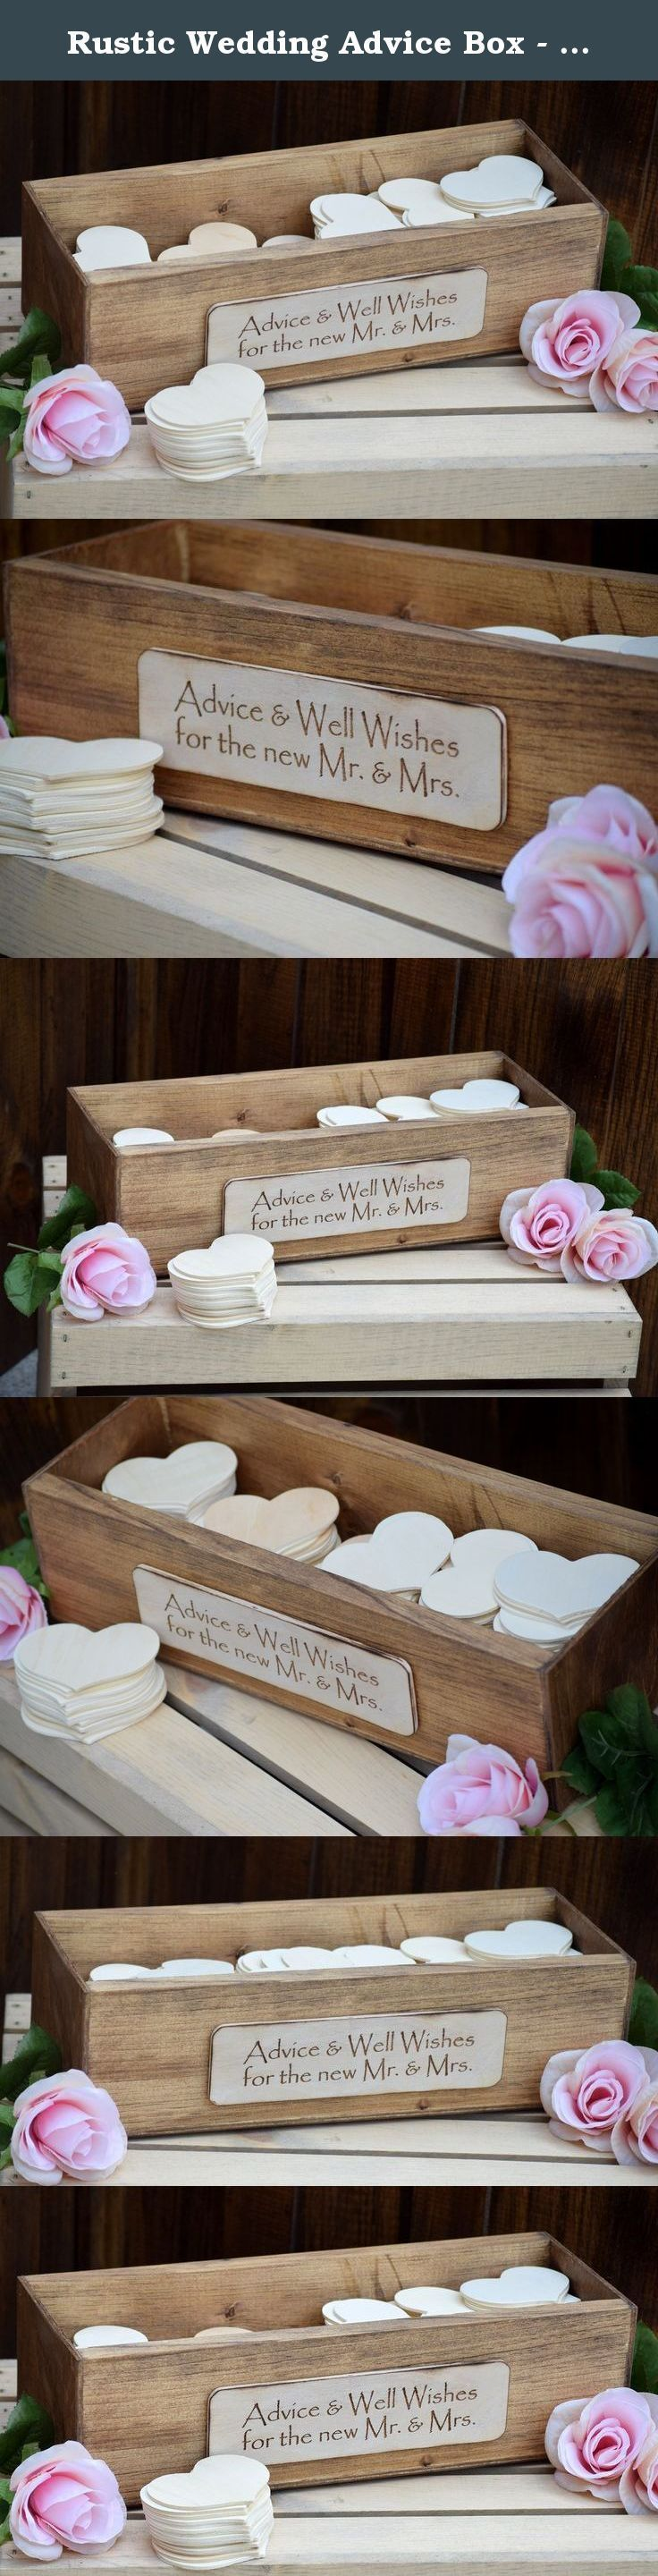 "Rustic Wedding Advice Box - Wishing Well - Rustic Wedding - Shabby Chic Wedding - Guest Book - Wedding Wishing Well - Rustic Guest Book. Great guestbook alternative!!! This listing includes the advice box and hearts. The front plaque is engraved with ""Advice & Well Wishes for the new Mr. & Mrs."" however you can engrave whatever you'd like. This box is great for guests to leave little notes and advice to the bride and groom. This listing includes wooden hearts that can be written on with…"